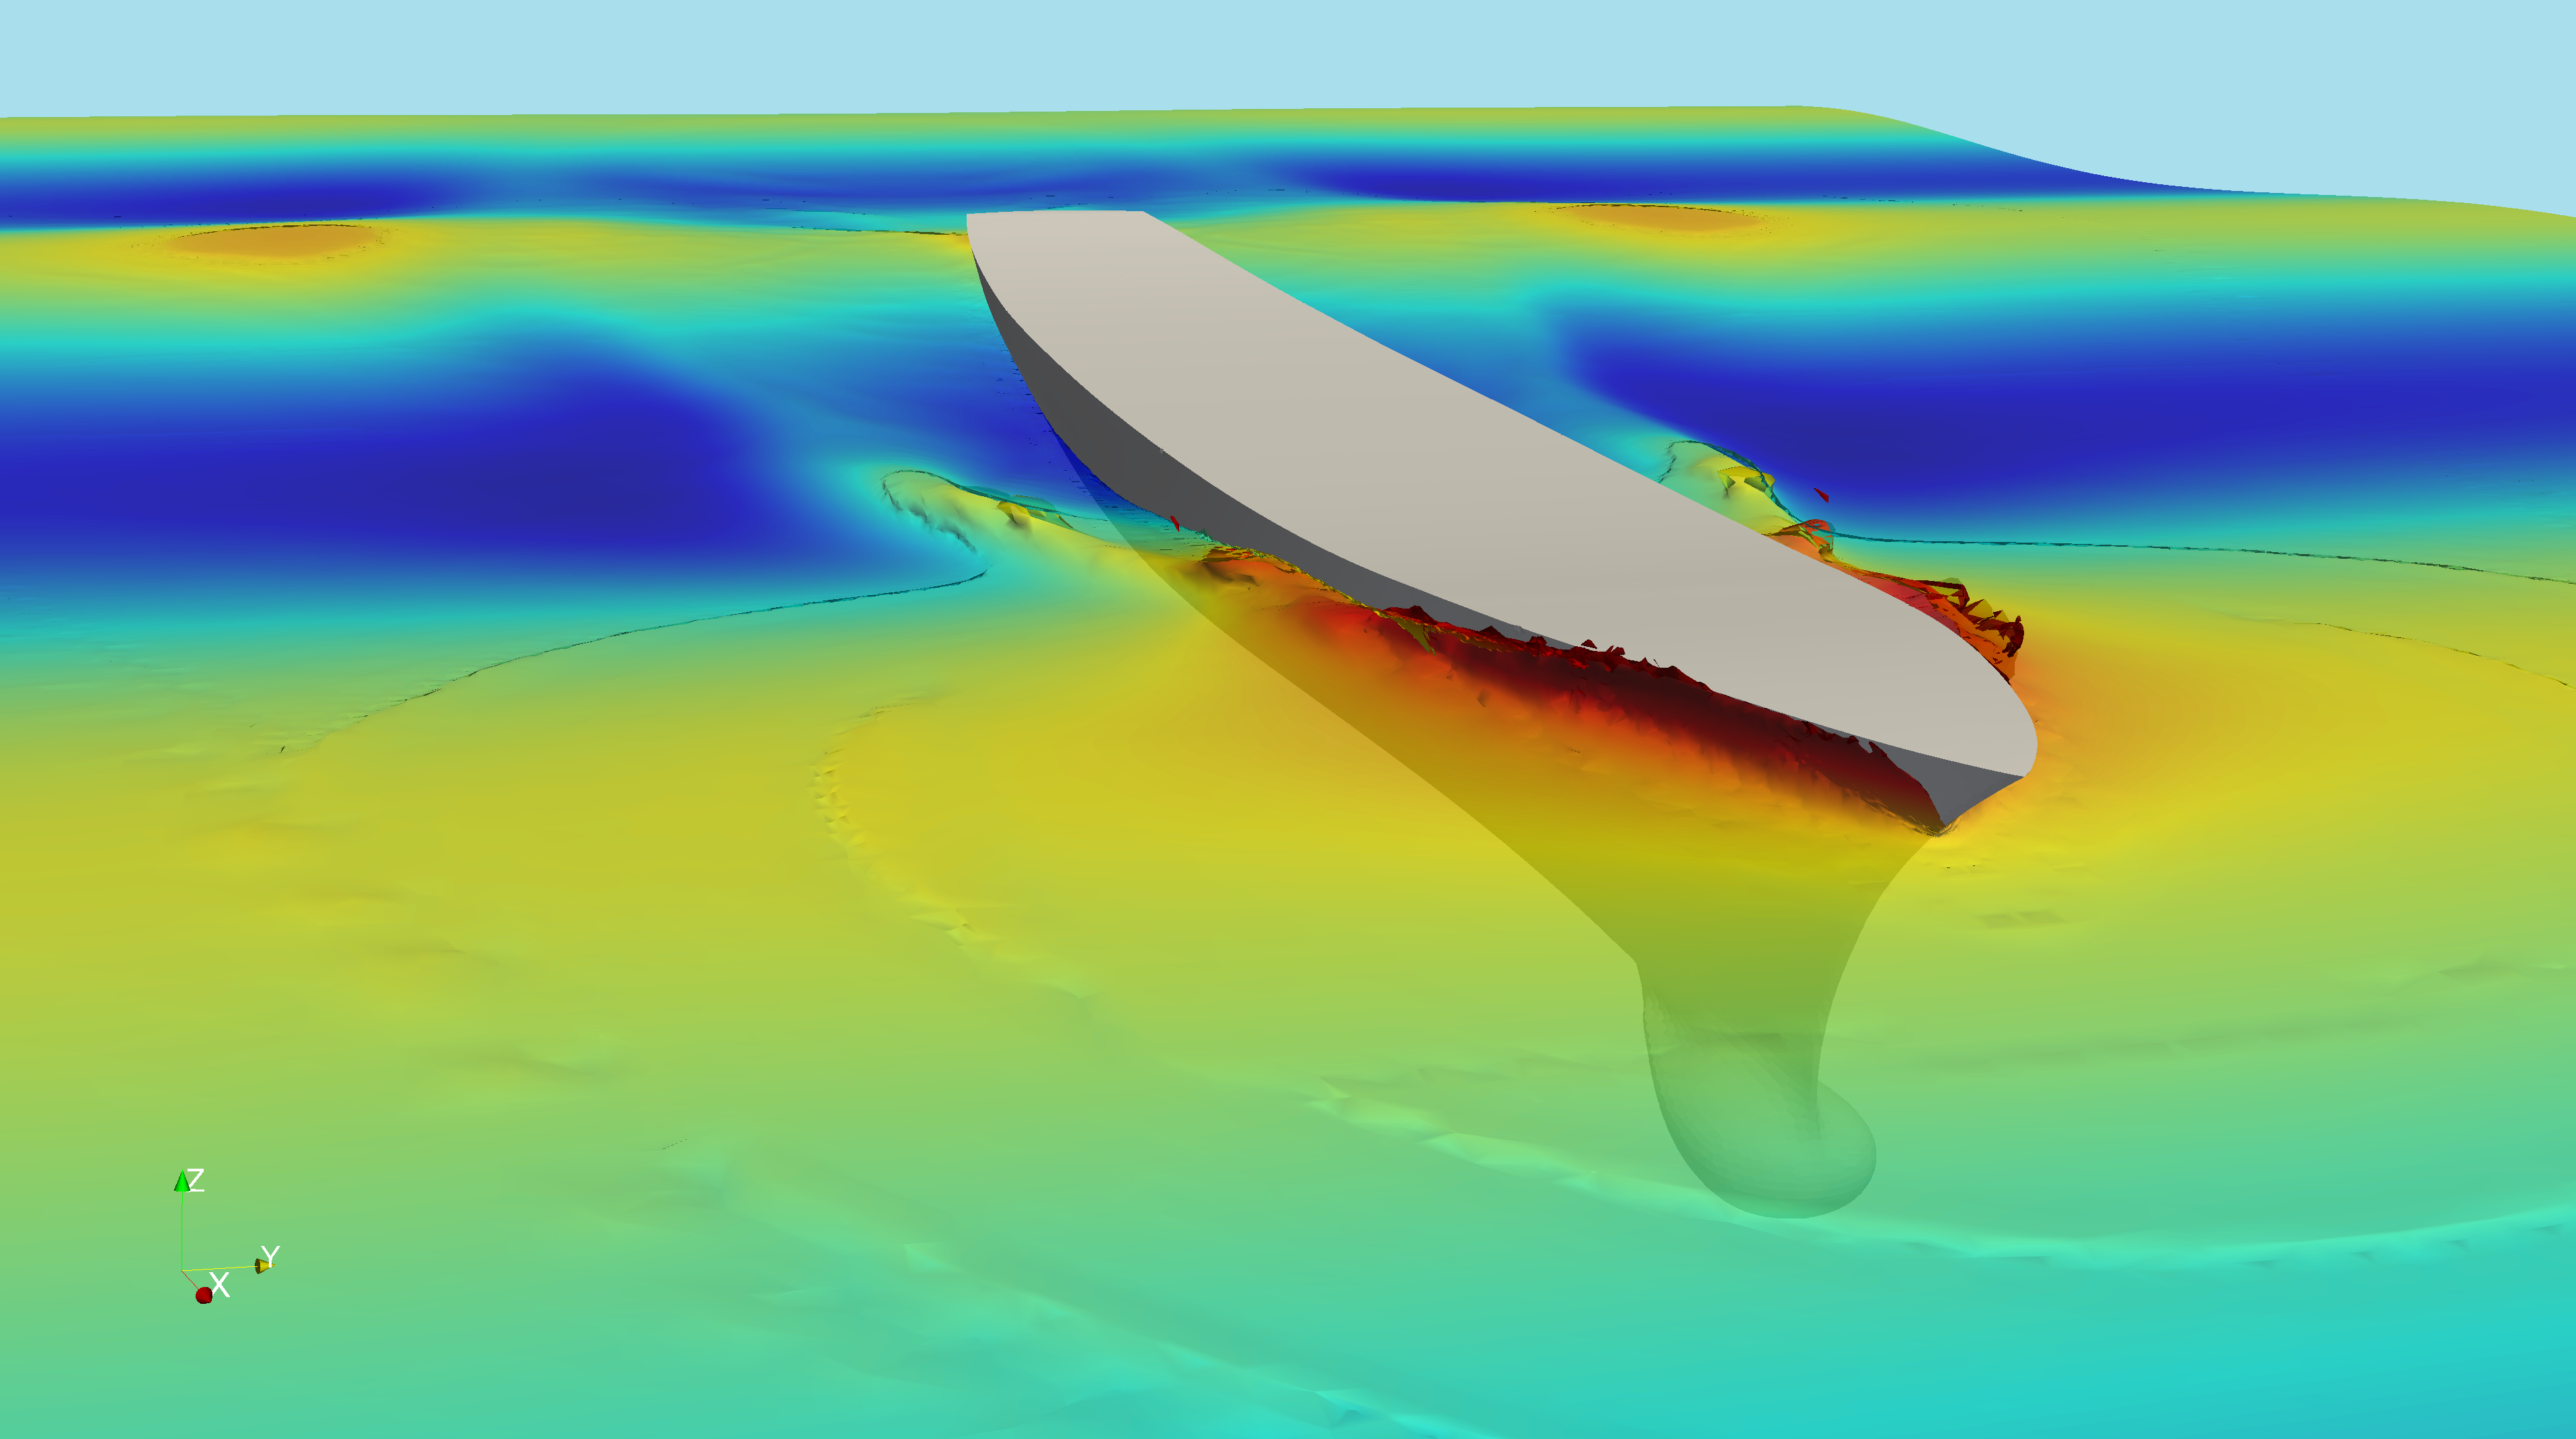 Simulation numérique, expertise, maritime, marine, CFD, boat, ship, simulation, vessel, hull, case study, optimization, build, swell, open source, marineFoam, cargo, sea, ocean, resistance, propeller, design, hydro, stern, wave, numerical simulation, Sea-FD, naval,